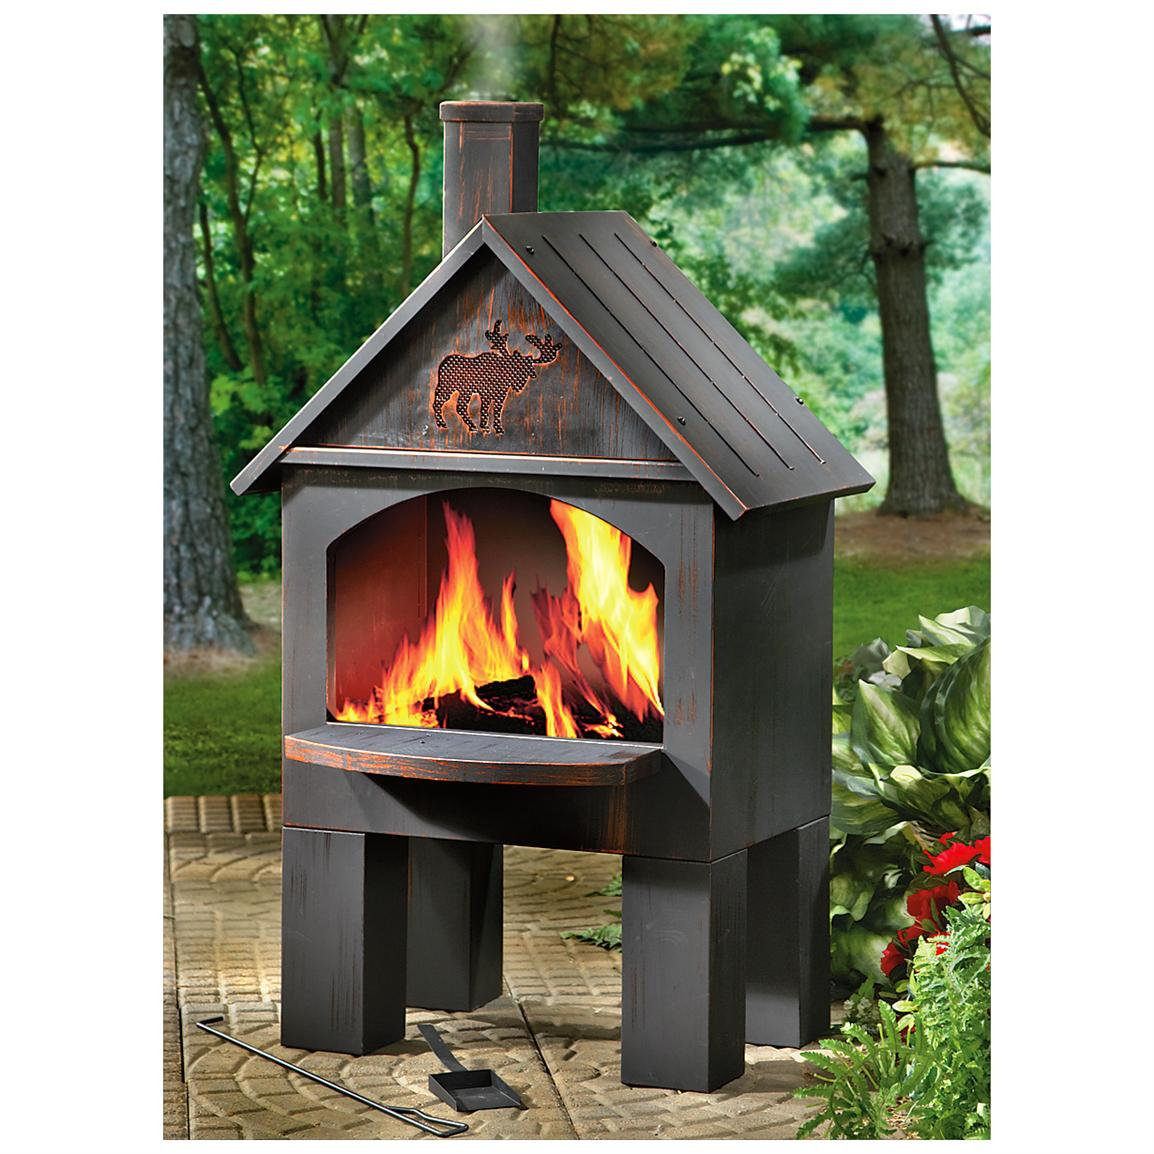 Unique Chiminea Fireplace With Home Design In Black For Outdoor Furniture Ideas